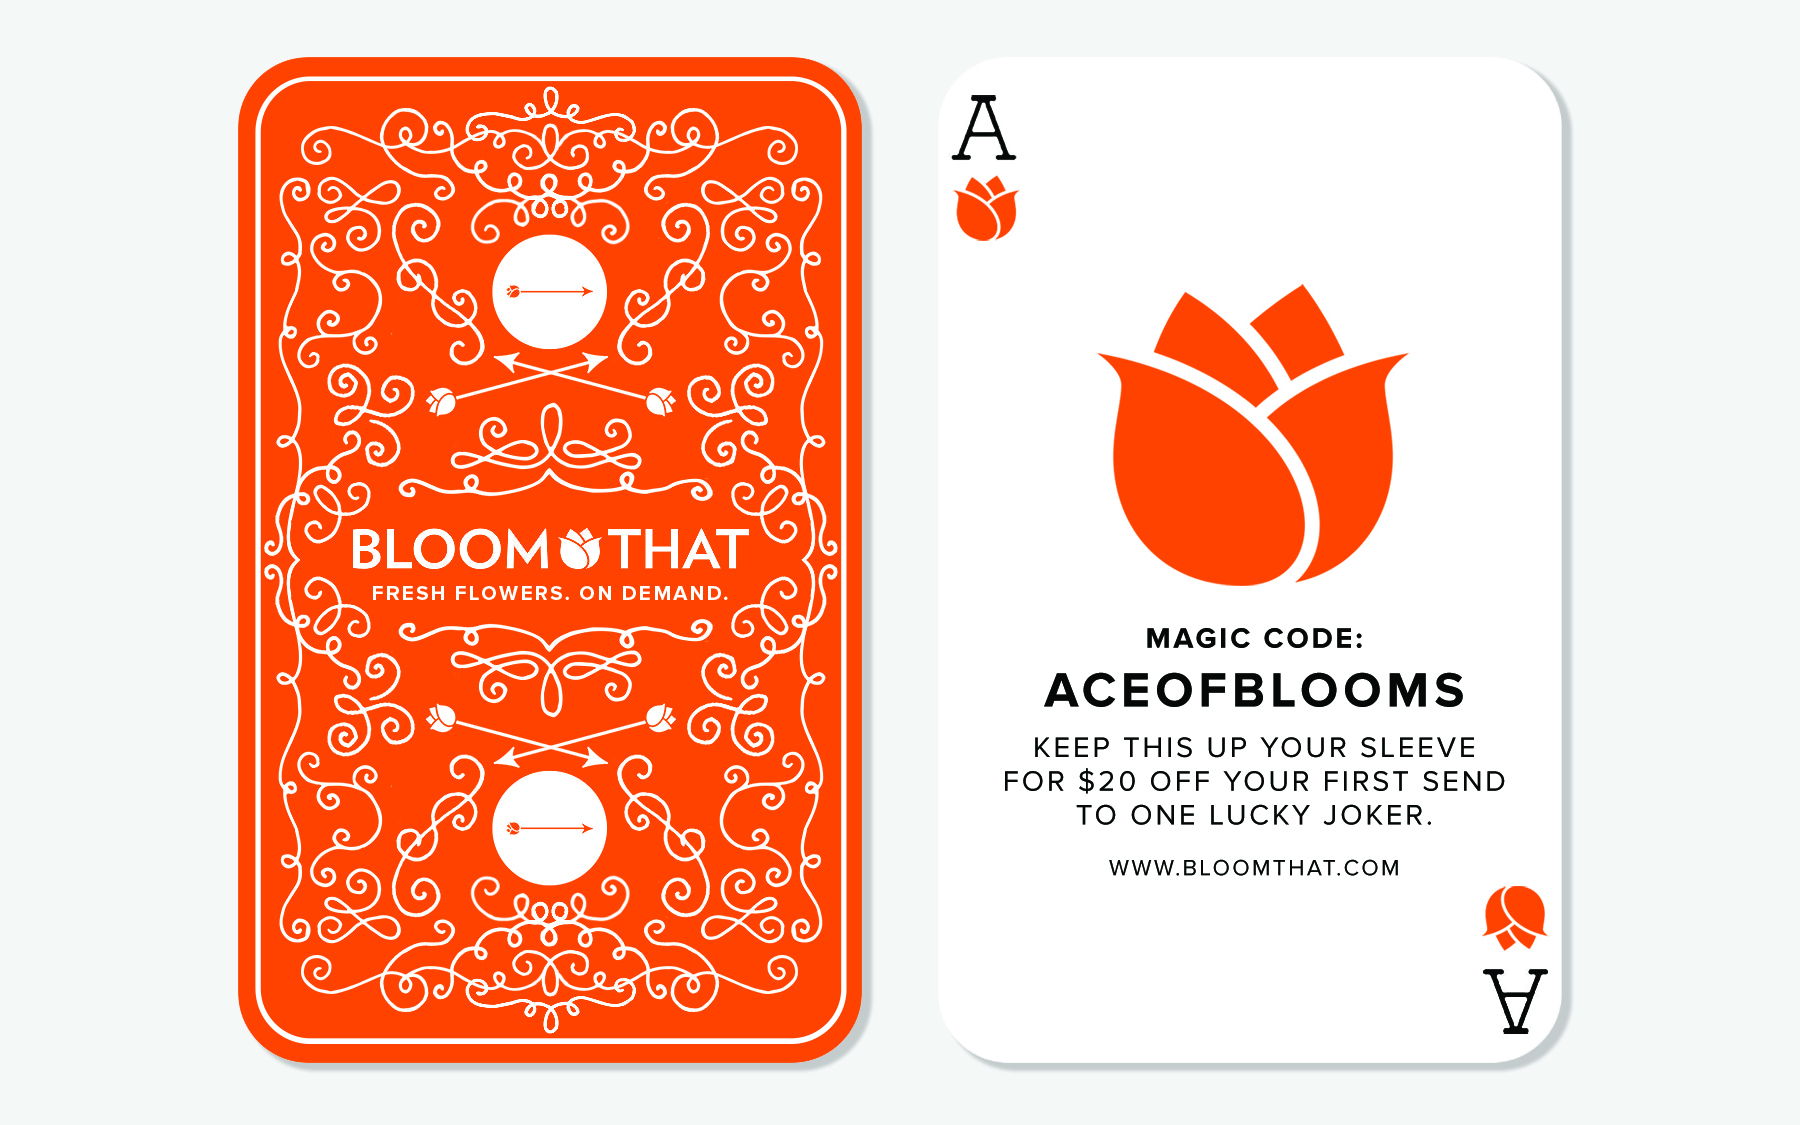 Influencer Card for BloomThat